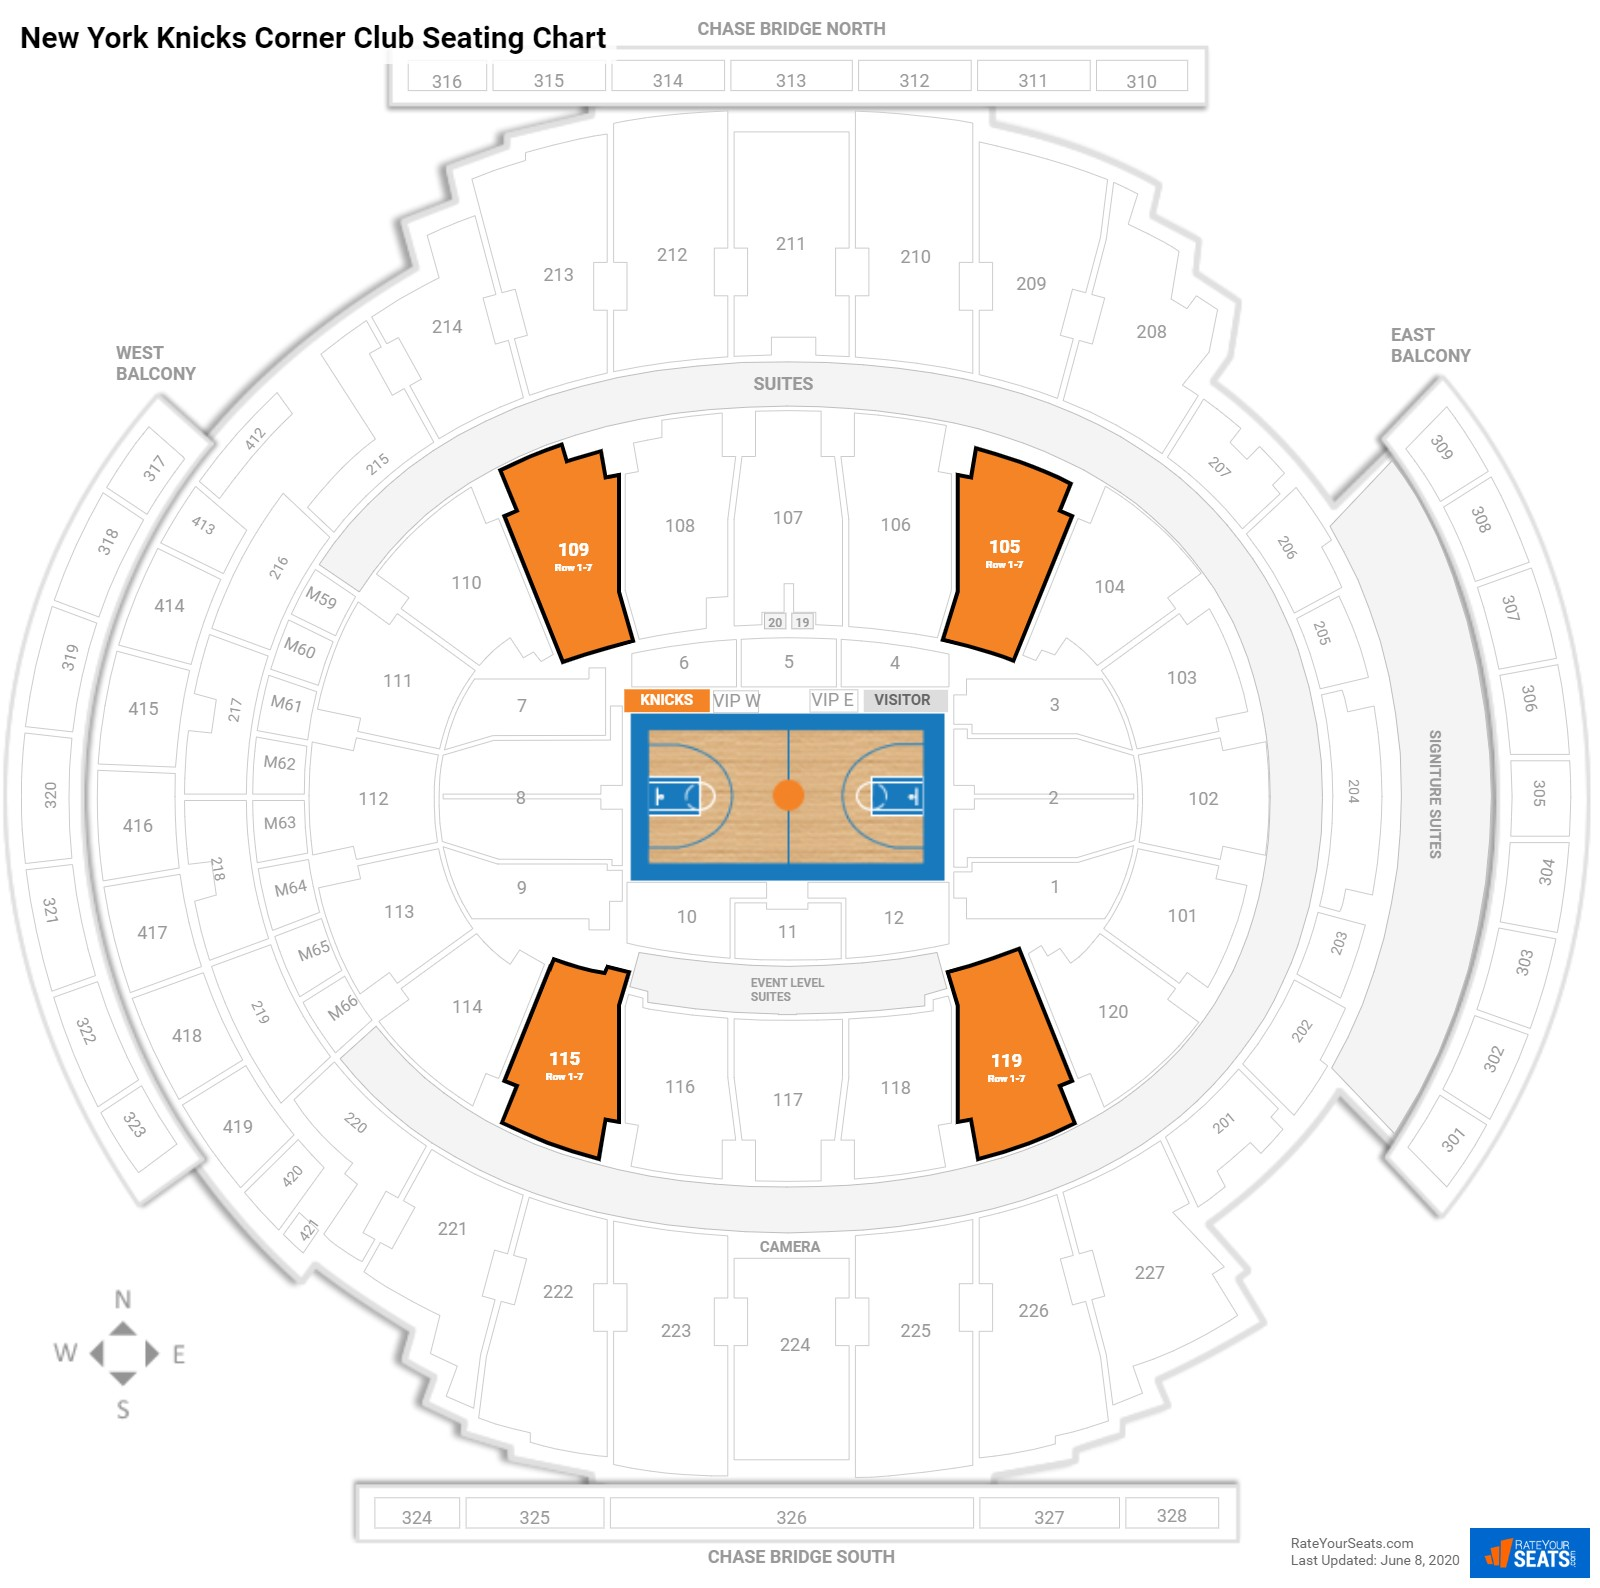 New York Knicks Club Seating At Madison Square Garden